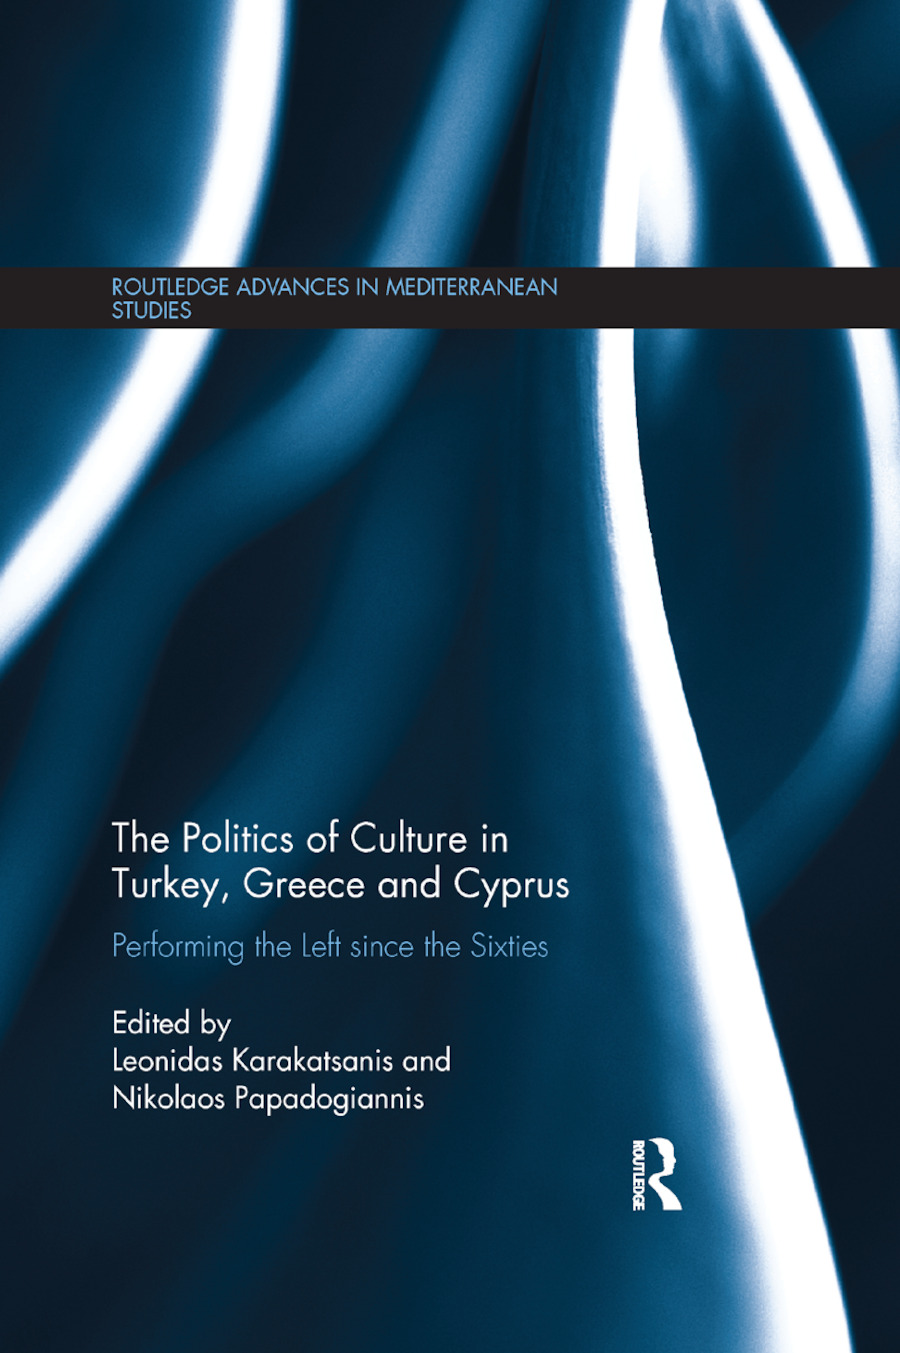 The Politics of Culture in Turkey, Greece & Cyprus: Performing the Left Since the Sixties book cover